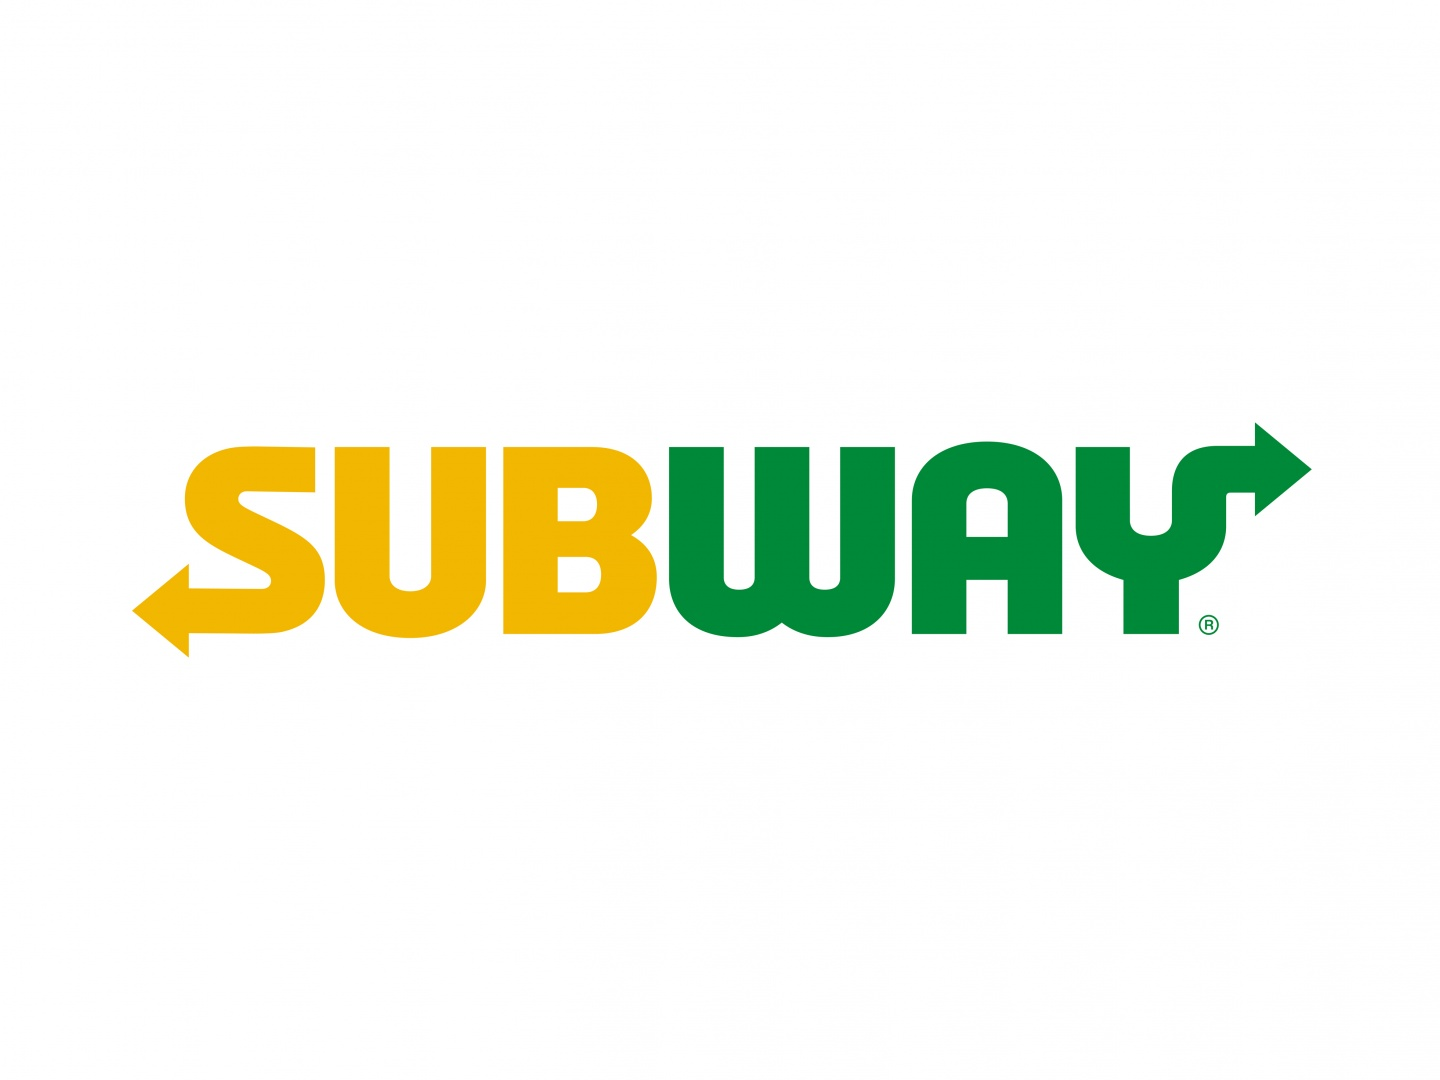 Subway Visual Identity  Thumbnail